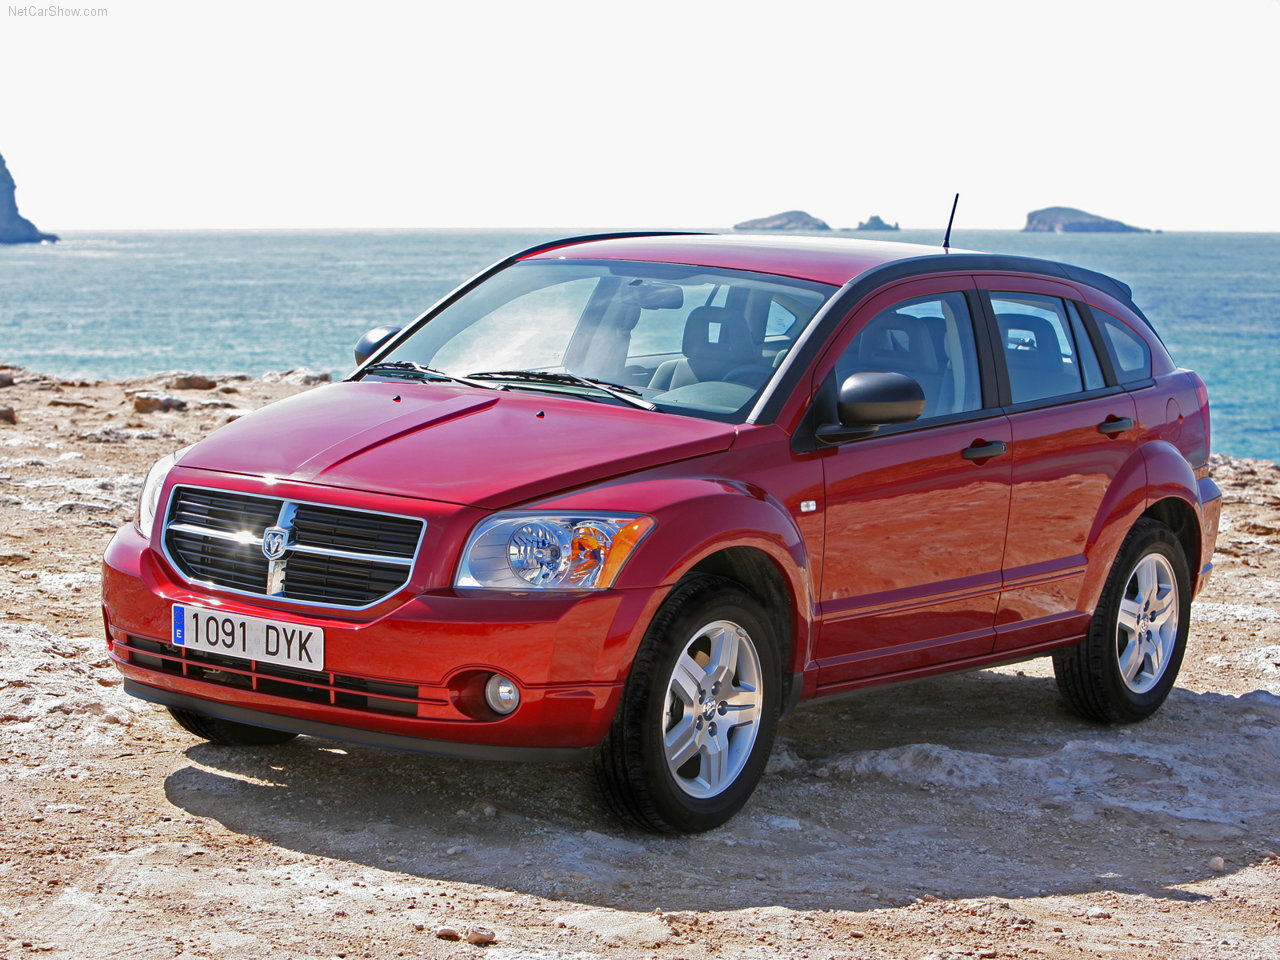 2007 Dodge Caliber | Autos Post